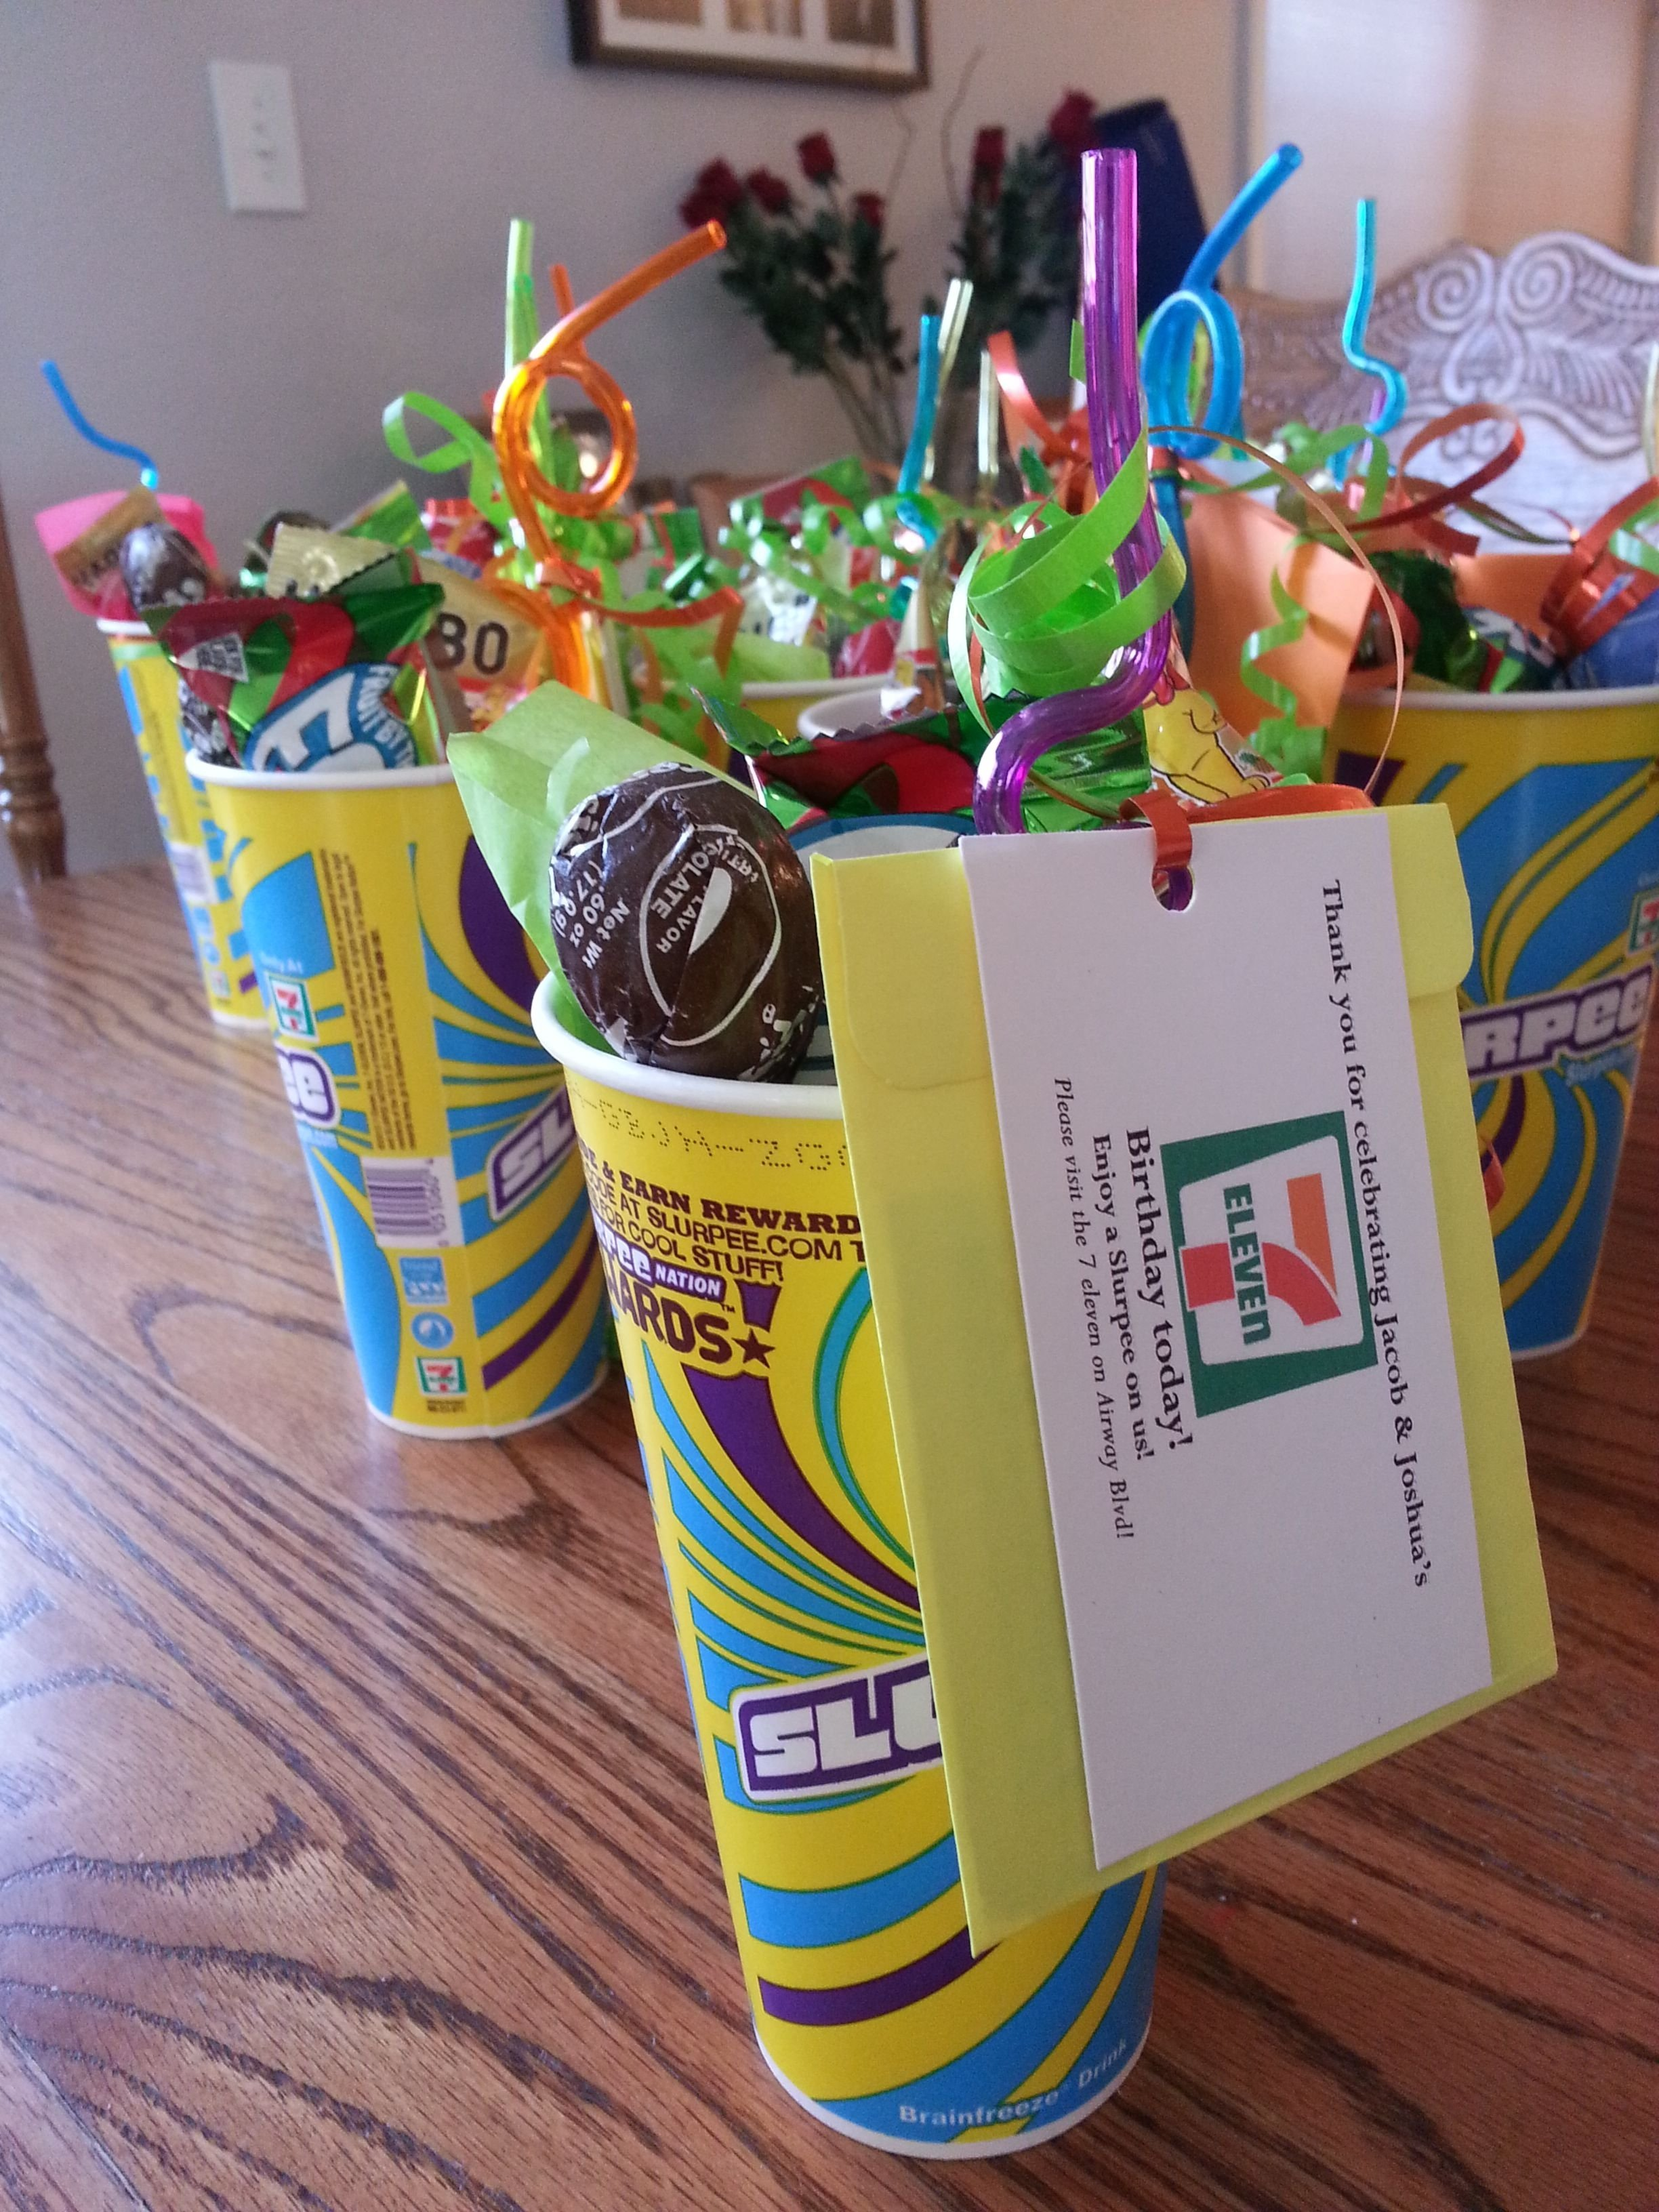 10 Lovable 8 Year Old Birthday Party Ideas For Boys My Turned 7 And 11